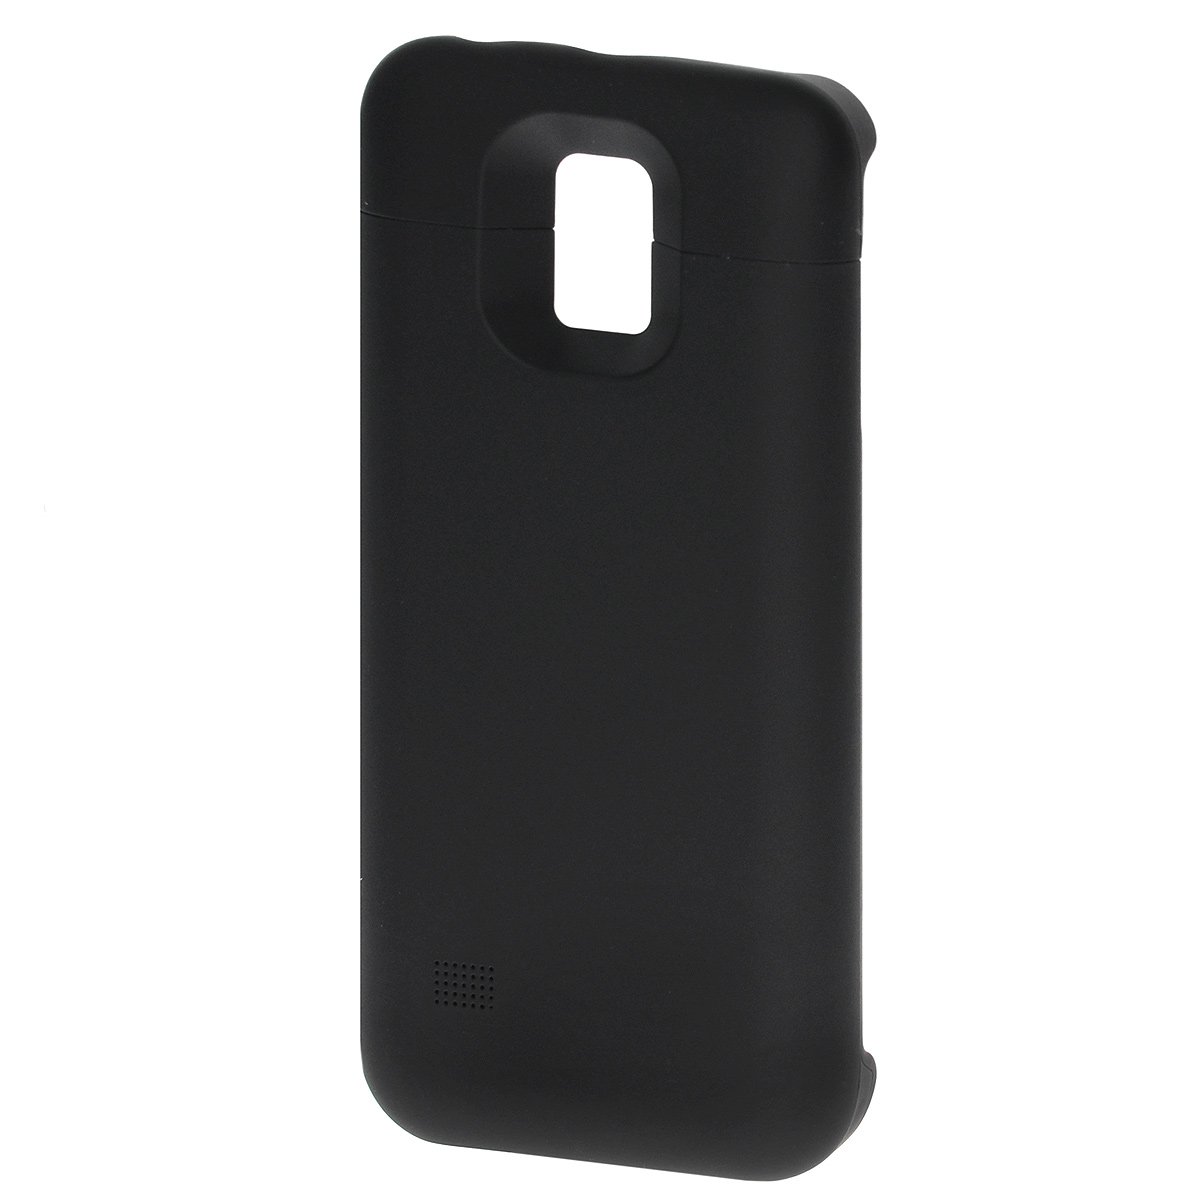 EXEQ HelpinG-SC09 чехол-аккумулятор для Samsung Galaxy S5 mini, Black (3300 мАч, клип-кейс) ellis faas ellis faas el861mwks824